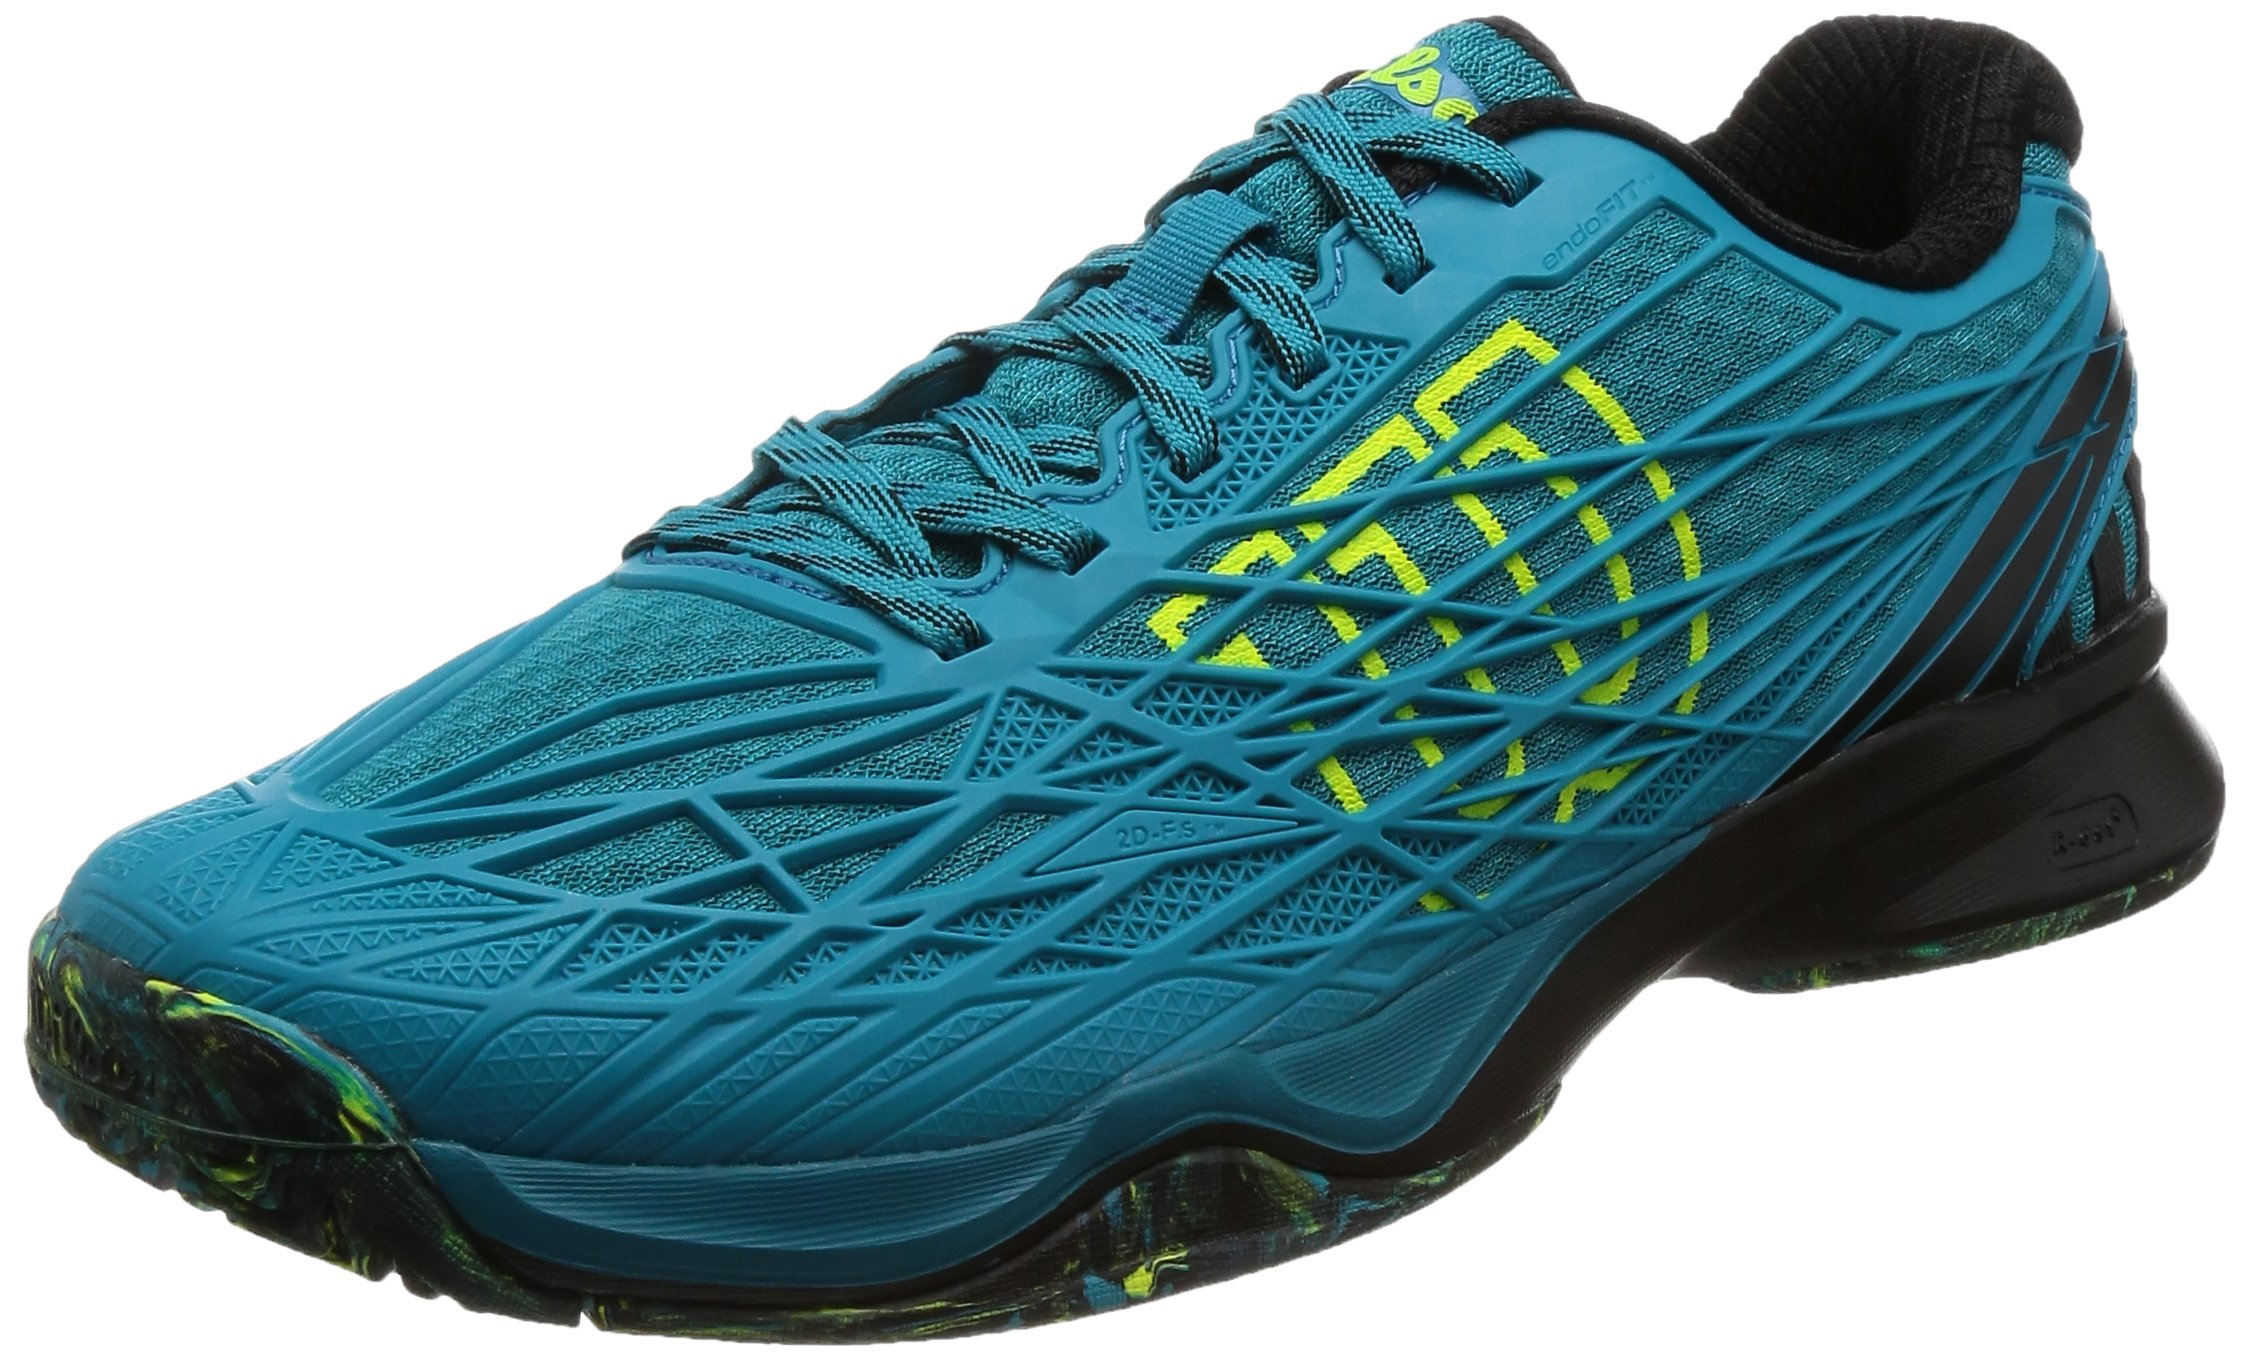 Wilson KAOS Men's All Court Tennis Shoe-9.5 D(M) US-Enamel Blue/Black/Safety Yellow by Wilson